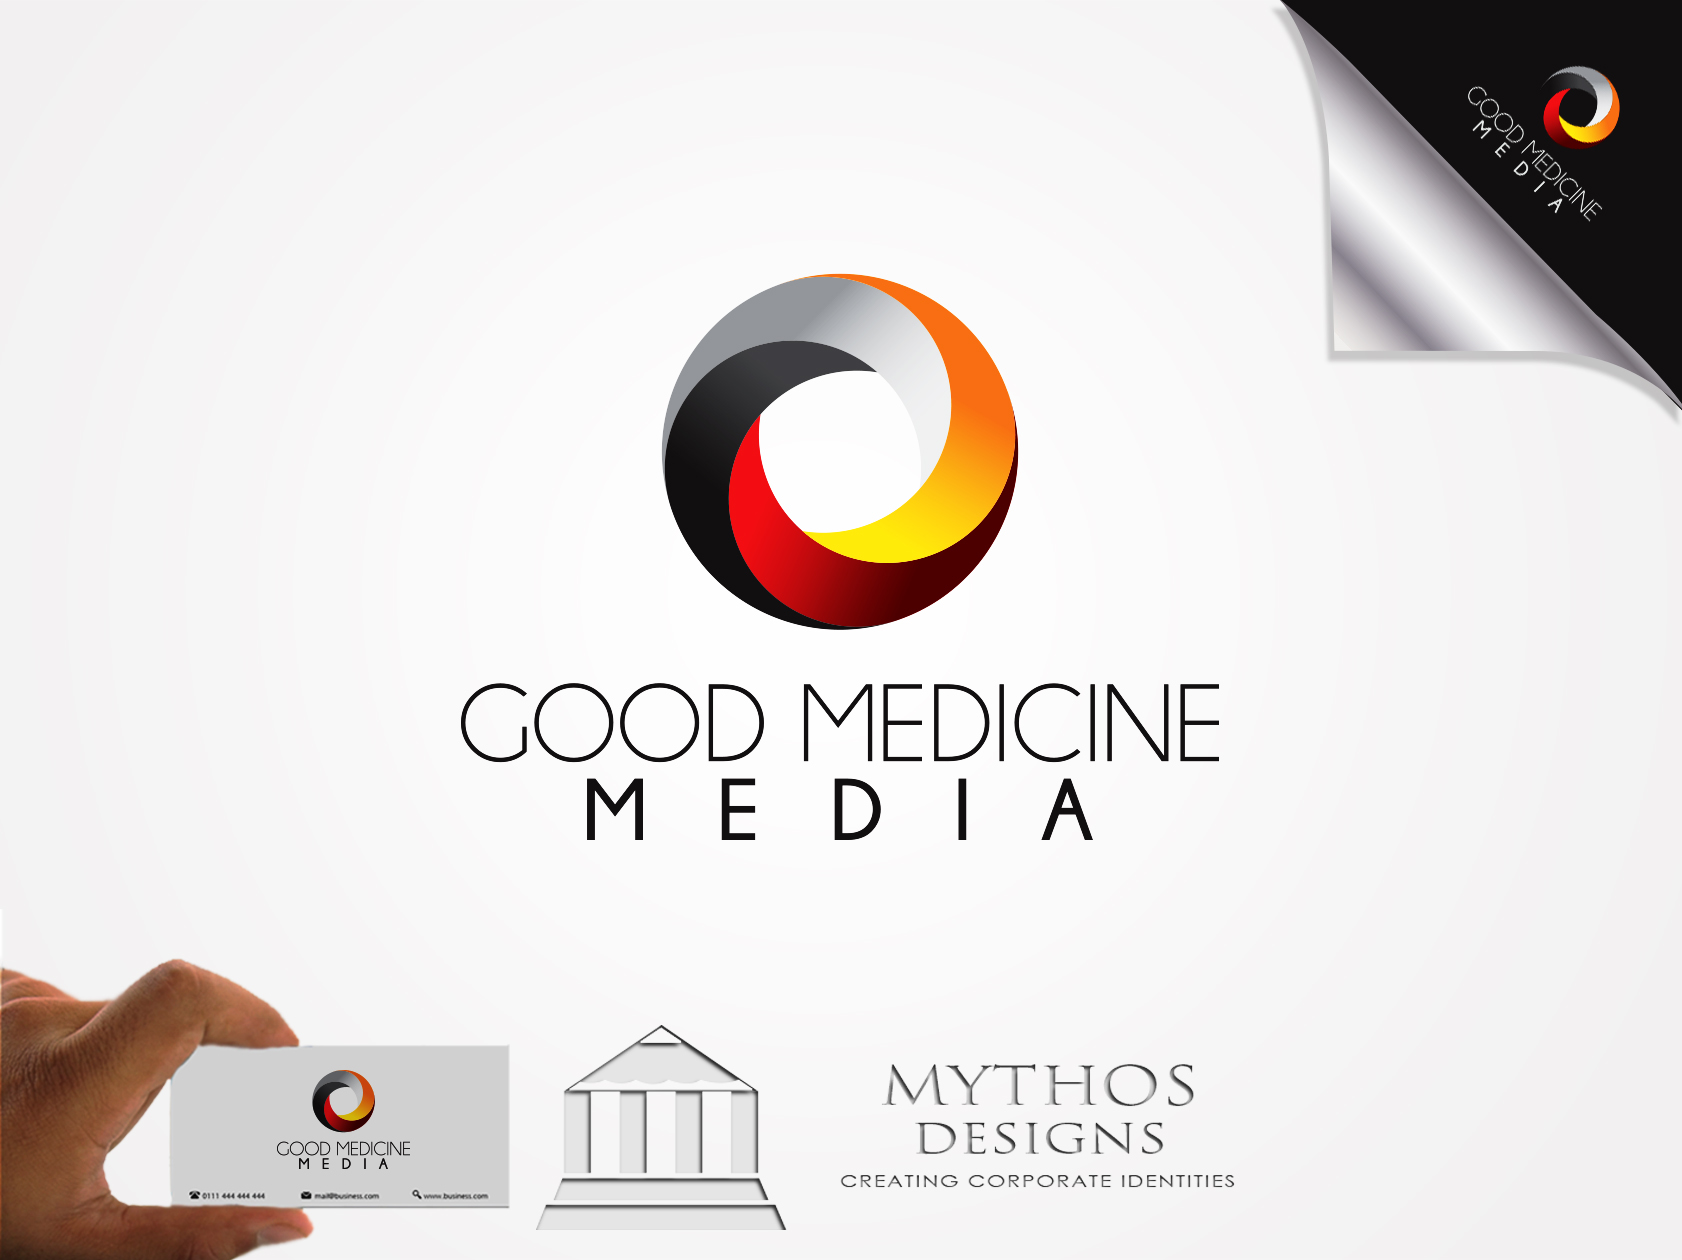 Logo Design by Mythos Designs - Entry No. 185 in the Logo Design Contest Good Medicine Media Logo Design.